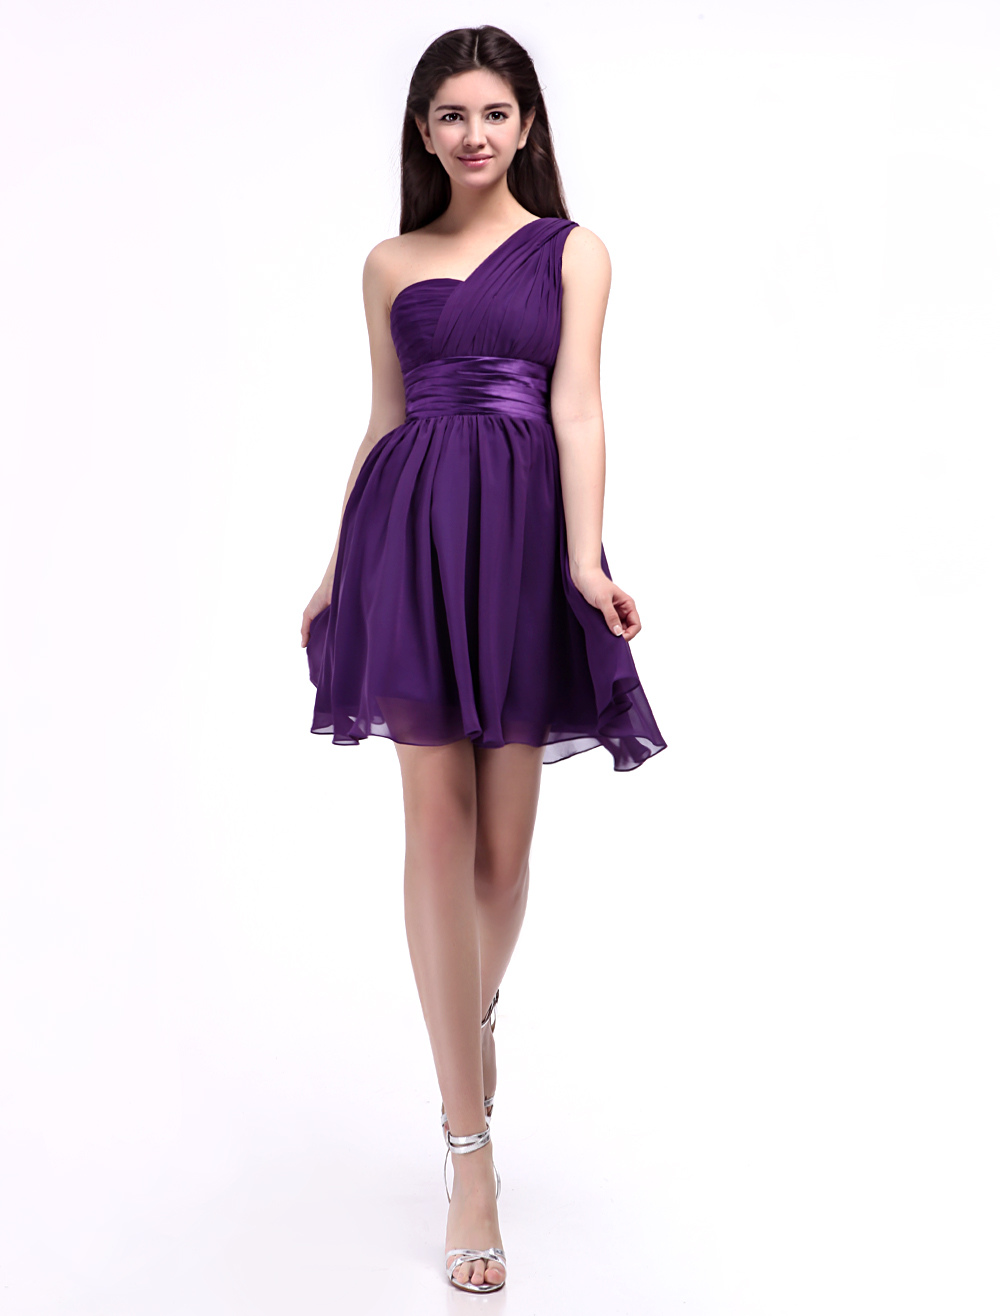 Chiffon Bridesmaid Dress Lavender One Shoulder Prom Dress Empire Waistline A Line Short Party Dress With Sash